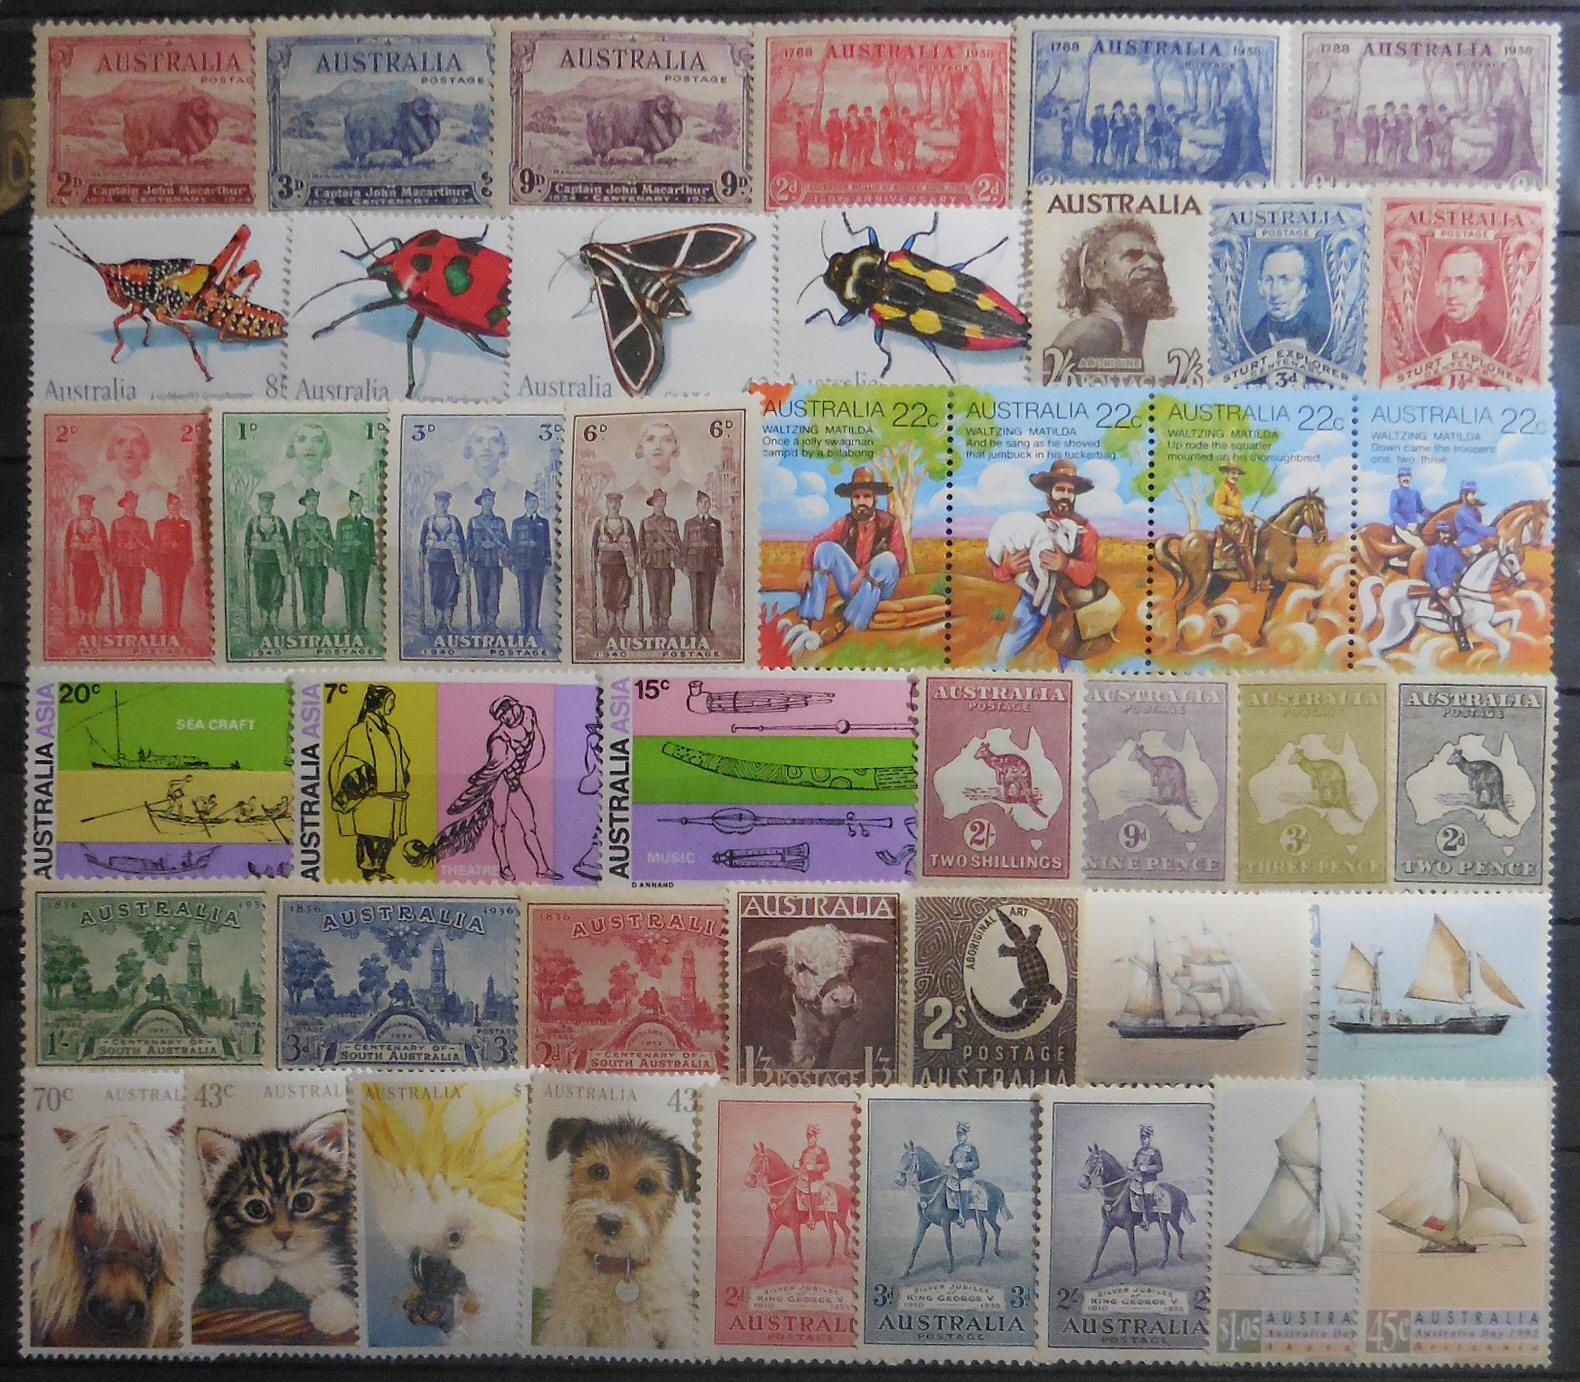 Australian stamps for collectors on approval